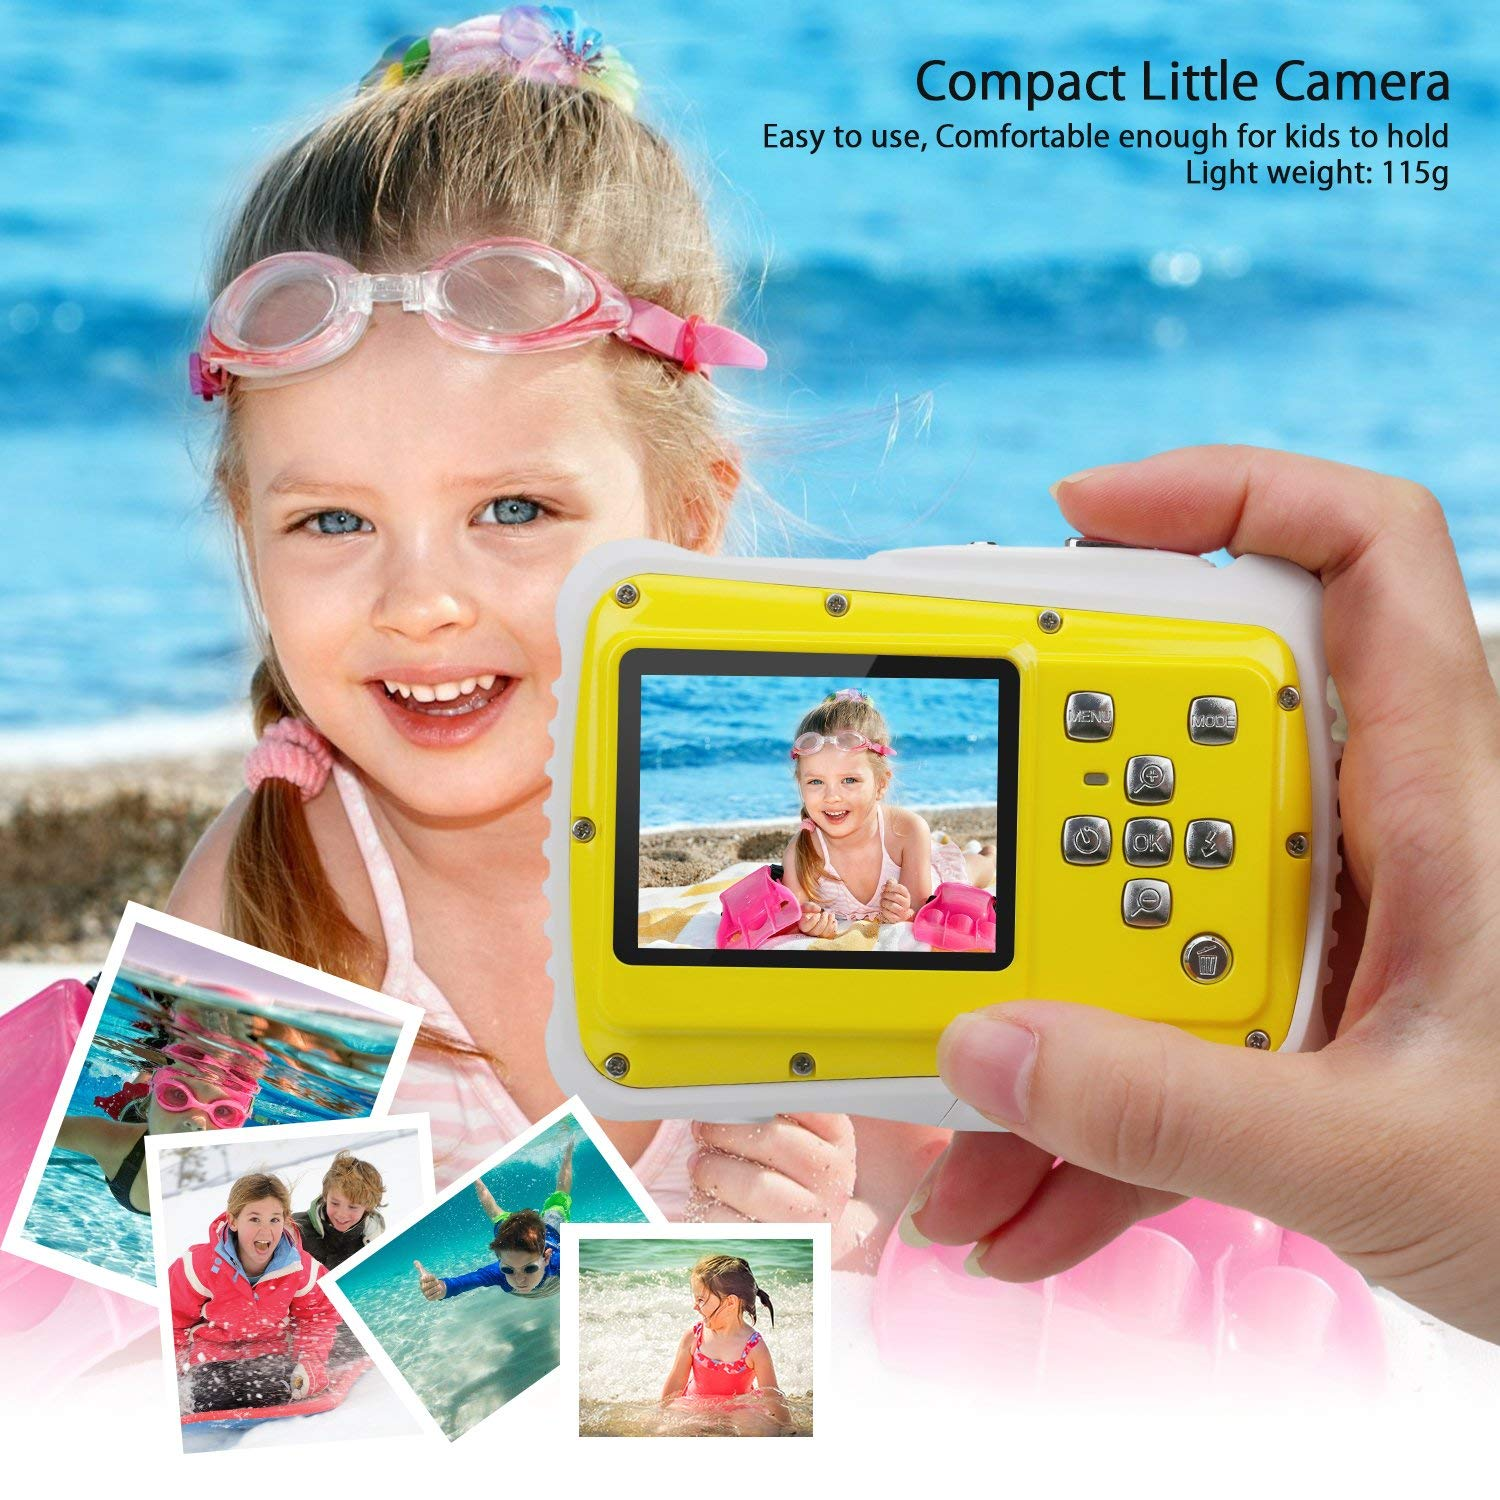 Kndio Kids Camera,Waterproof Camera for Kids Underwater Action Camera Camcorder with 12MP HD 8X Digital Zoom Flash Mic 2.0 Inch LCD Display with 8G SD Card 3 Non-Rechargeable Batteries Included by Kndio (Image #7)